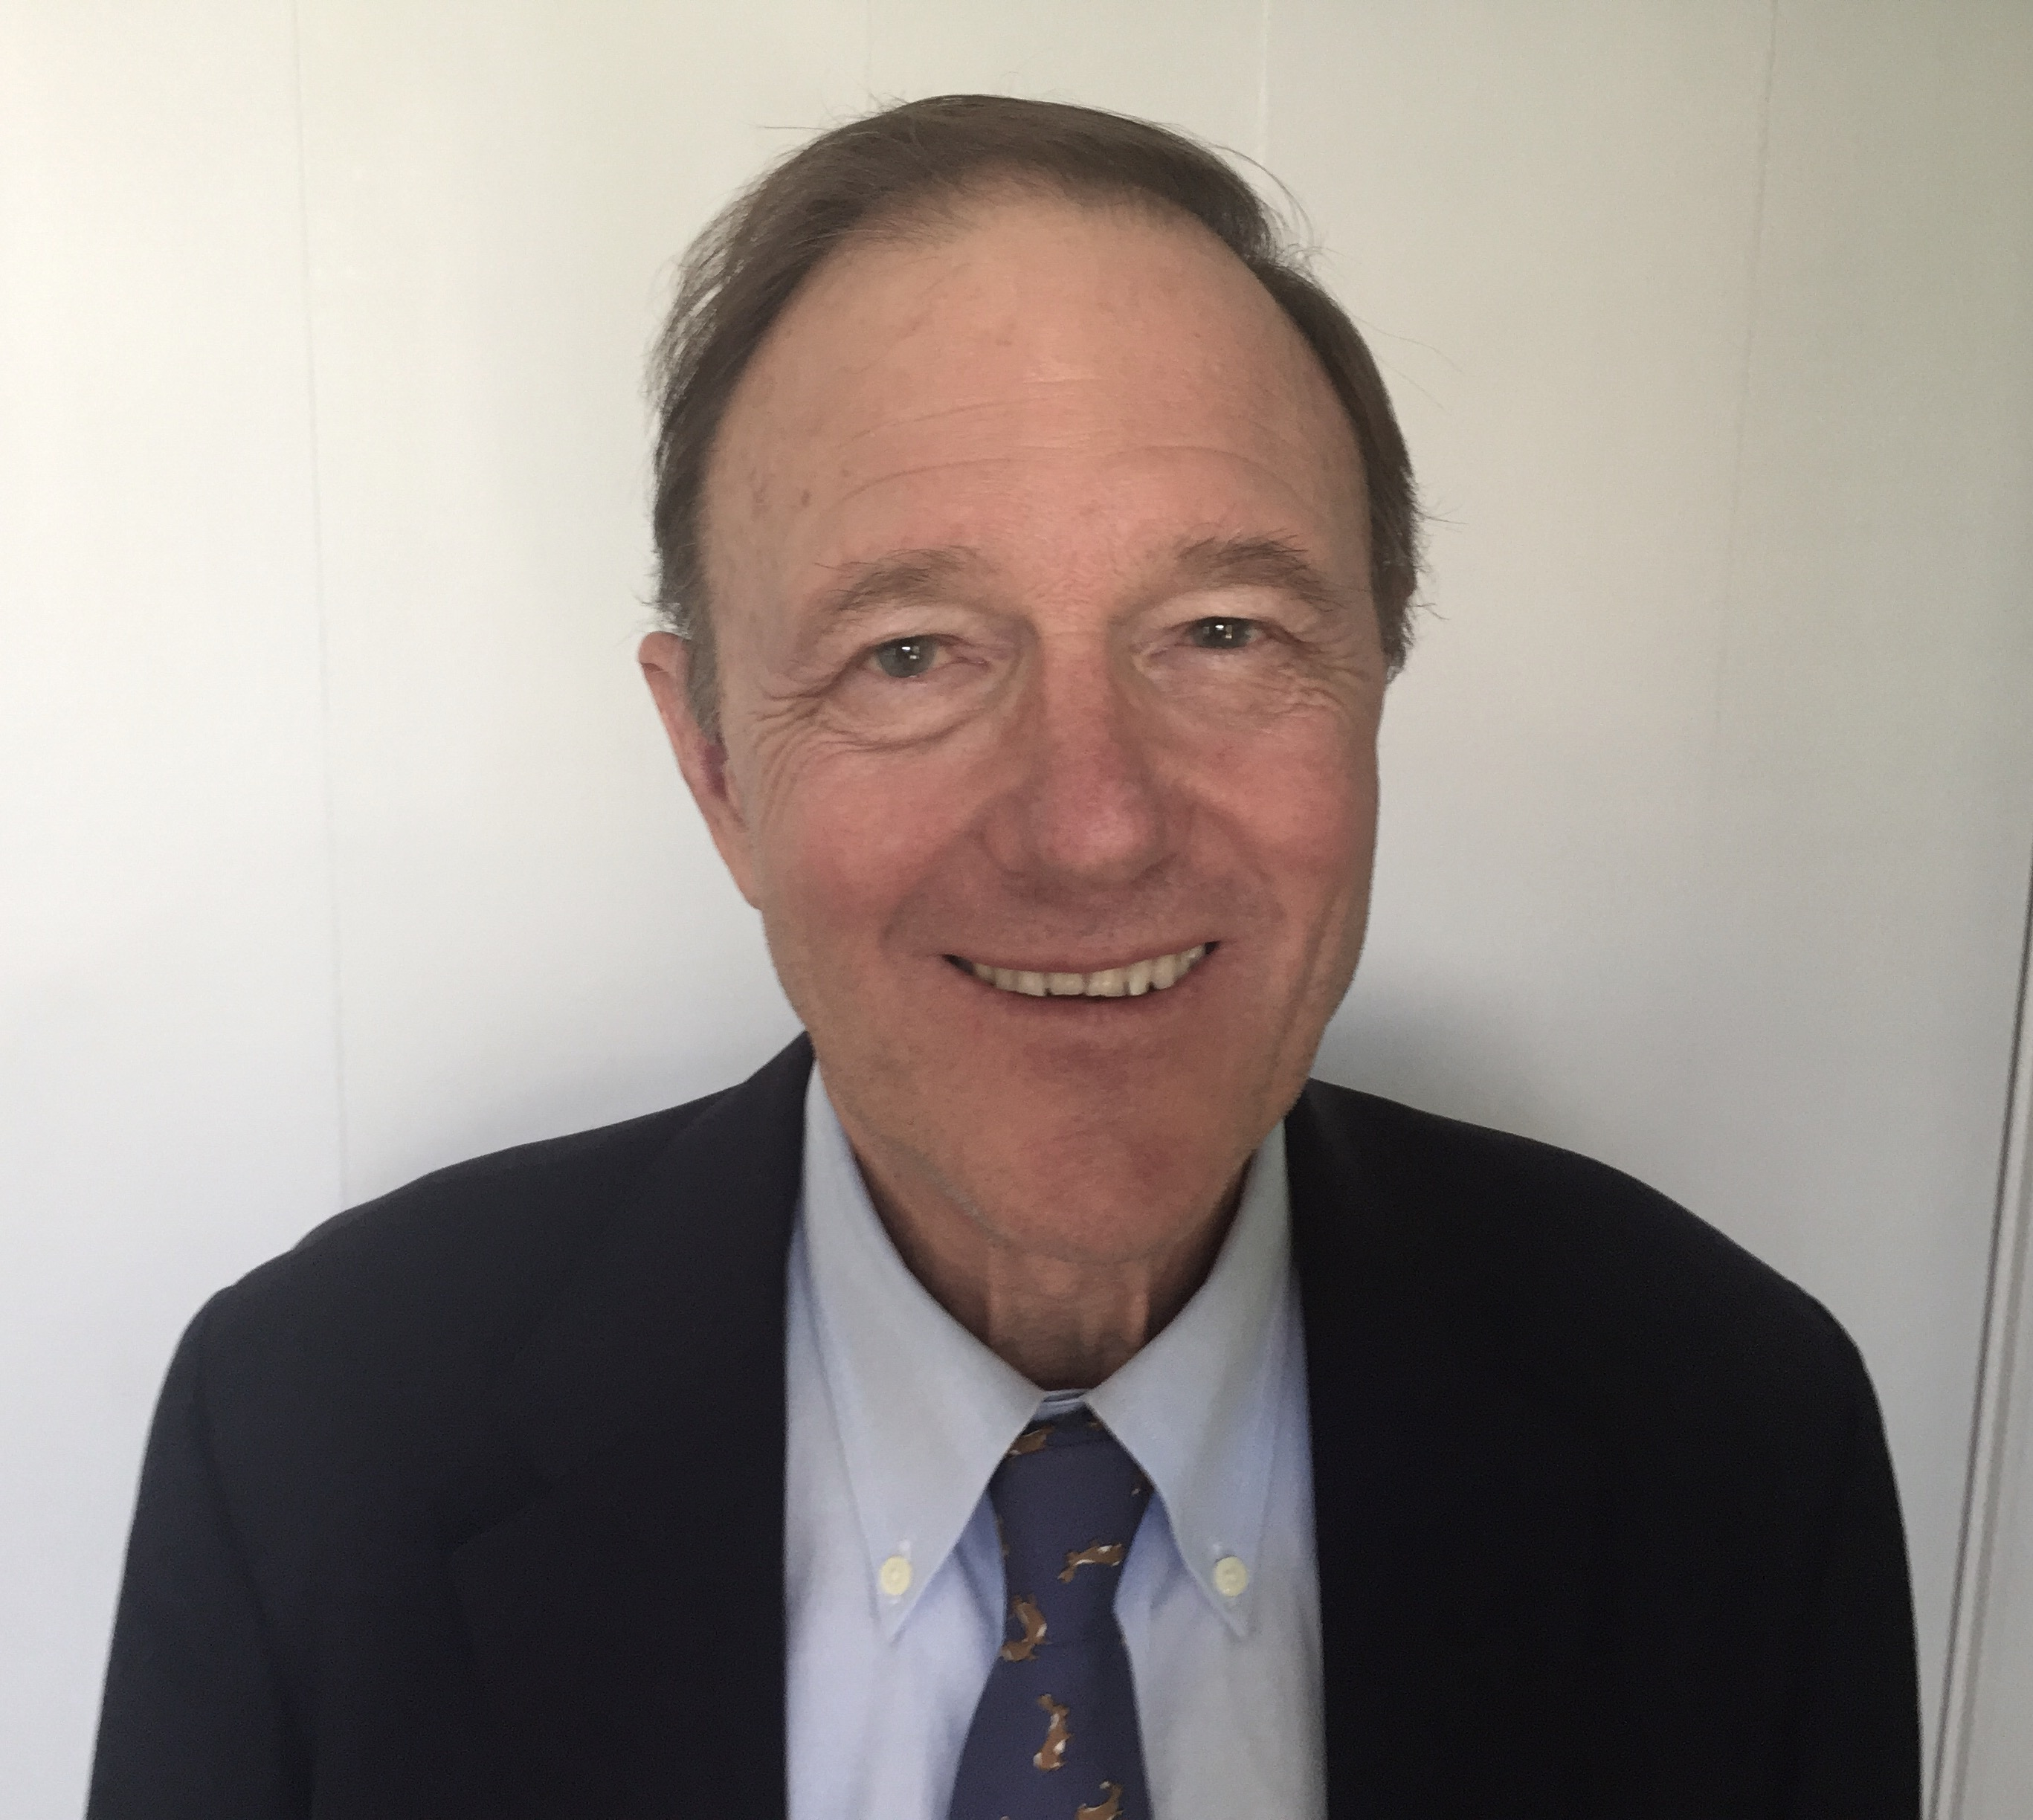 Donald Alford, NV5, M&A, speaker, hot firm, zweig group